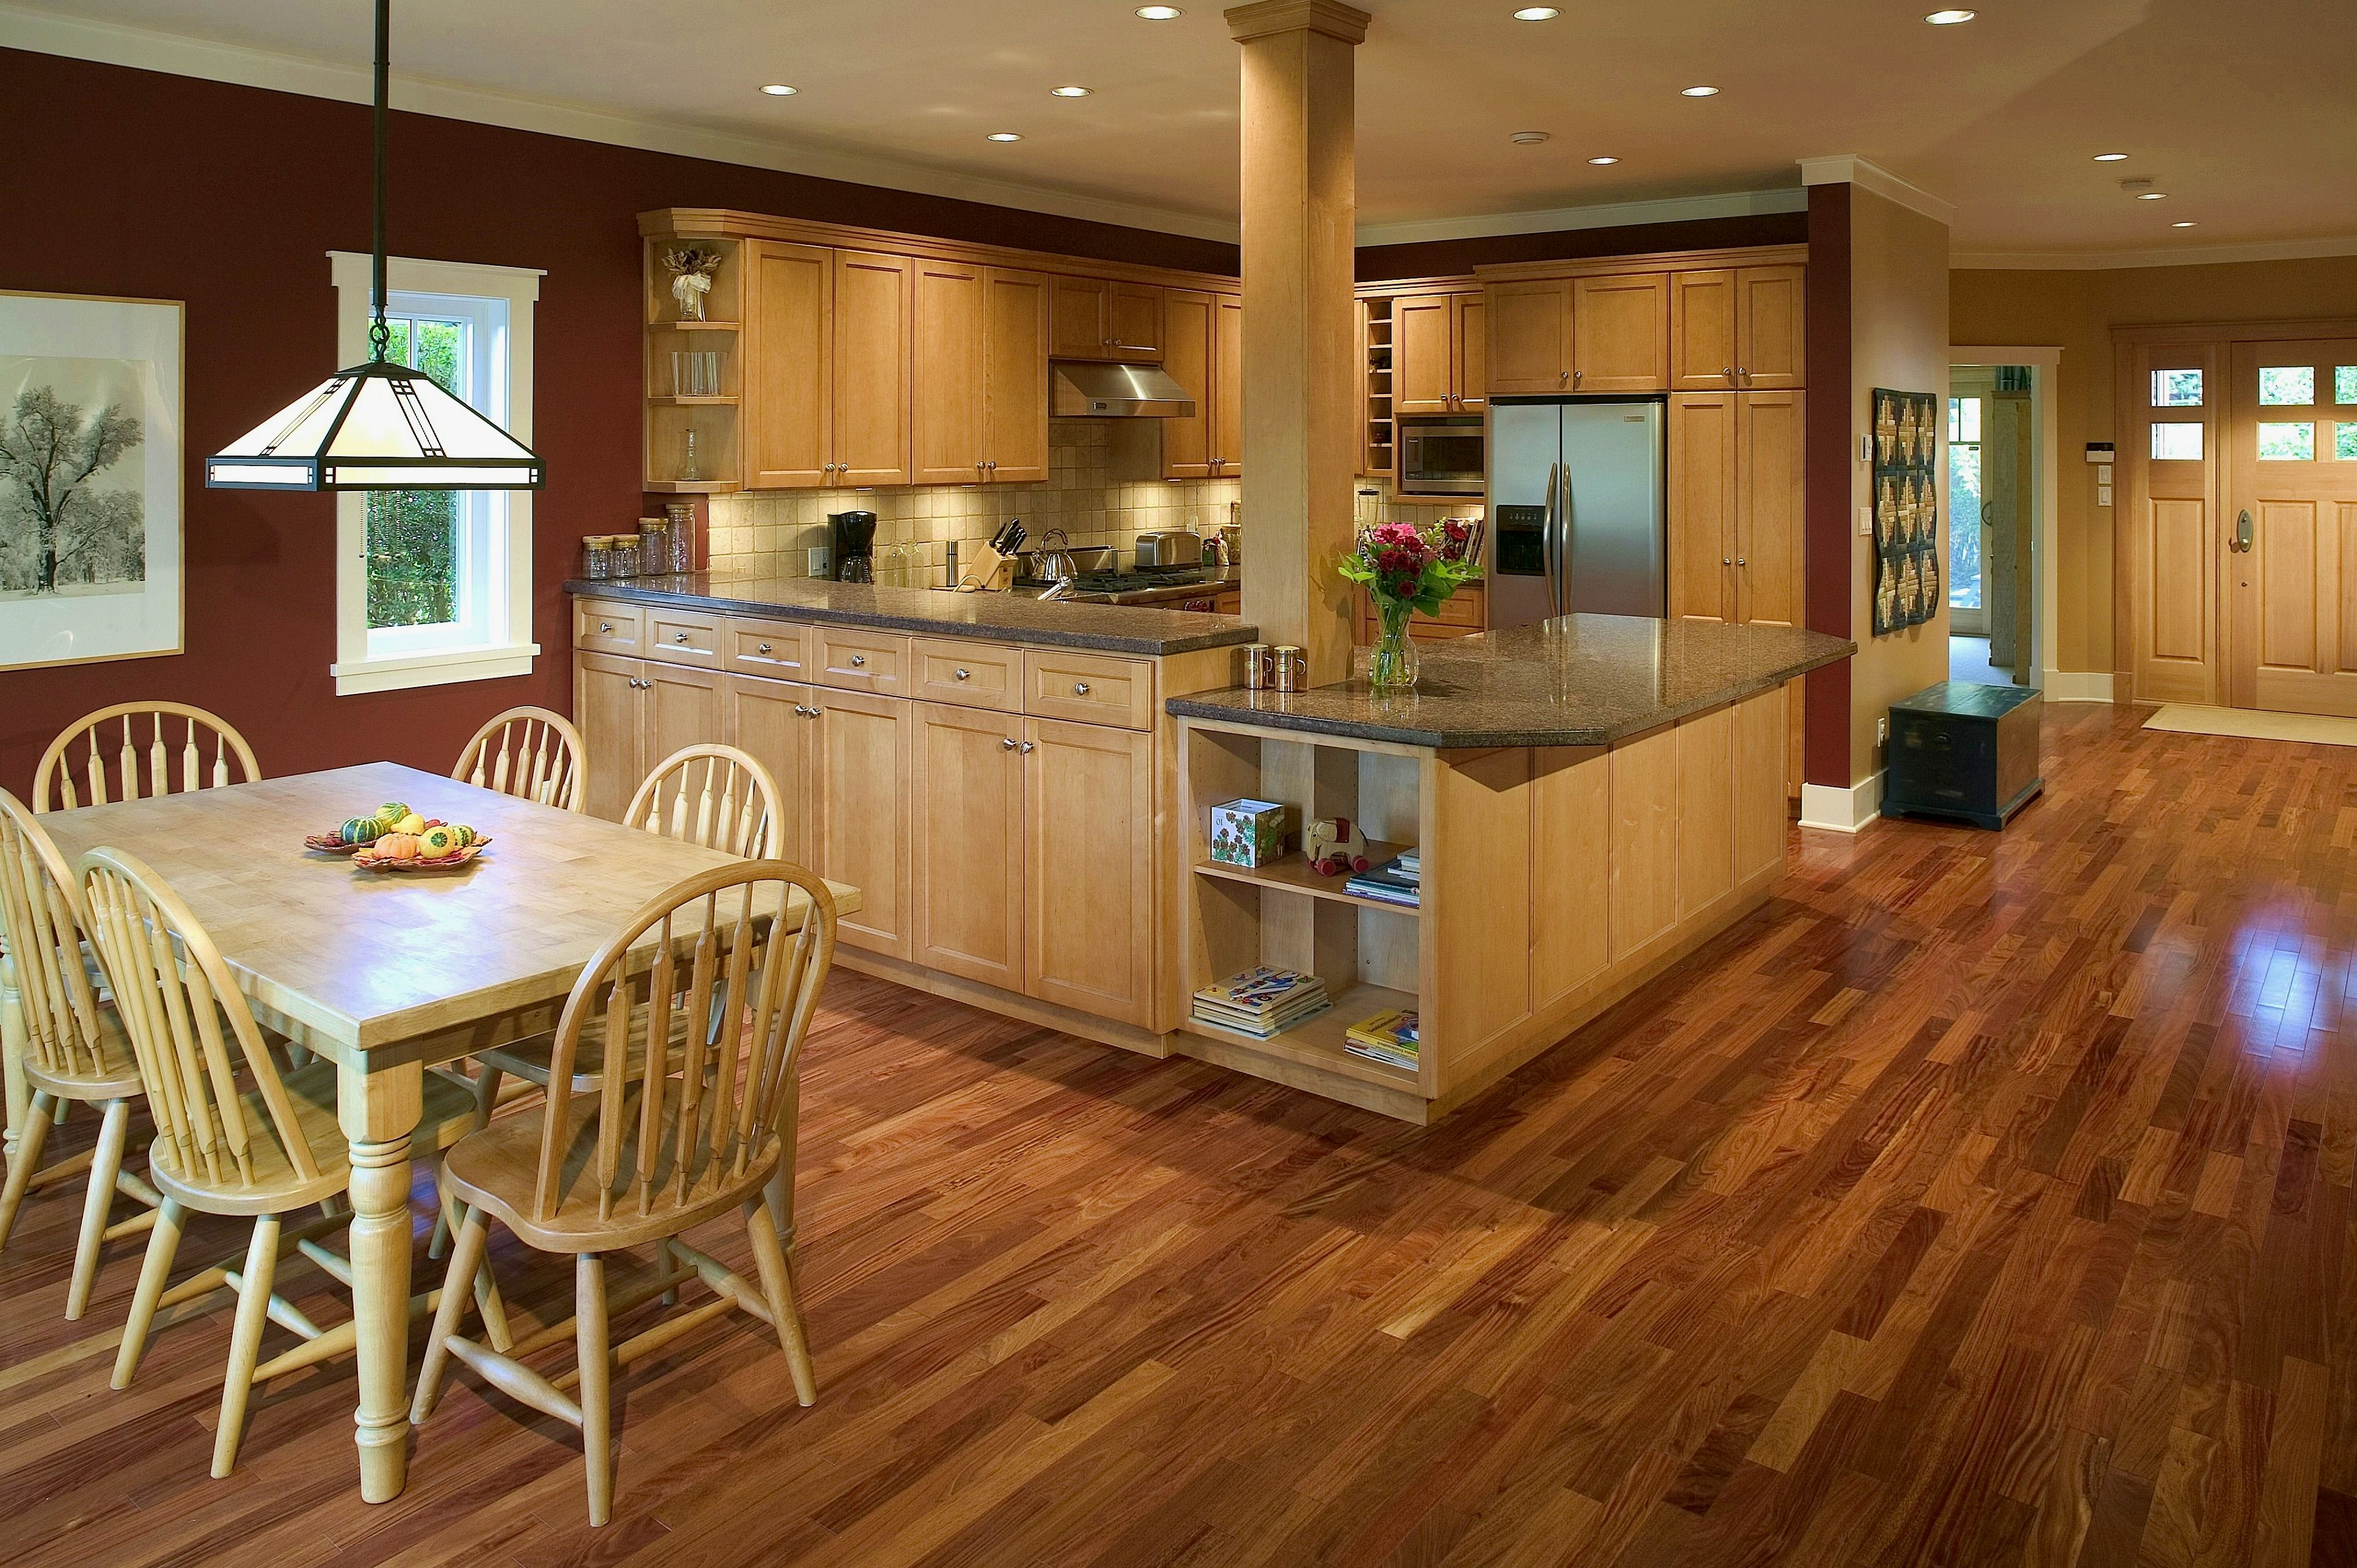 8 Tips For Home Kitchen Remodel With Images Cost Of Kitchen